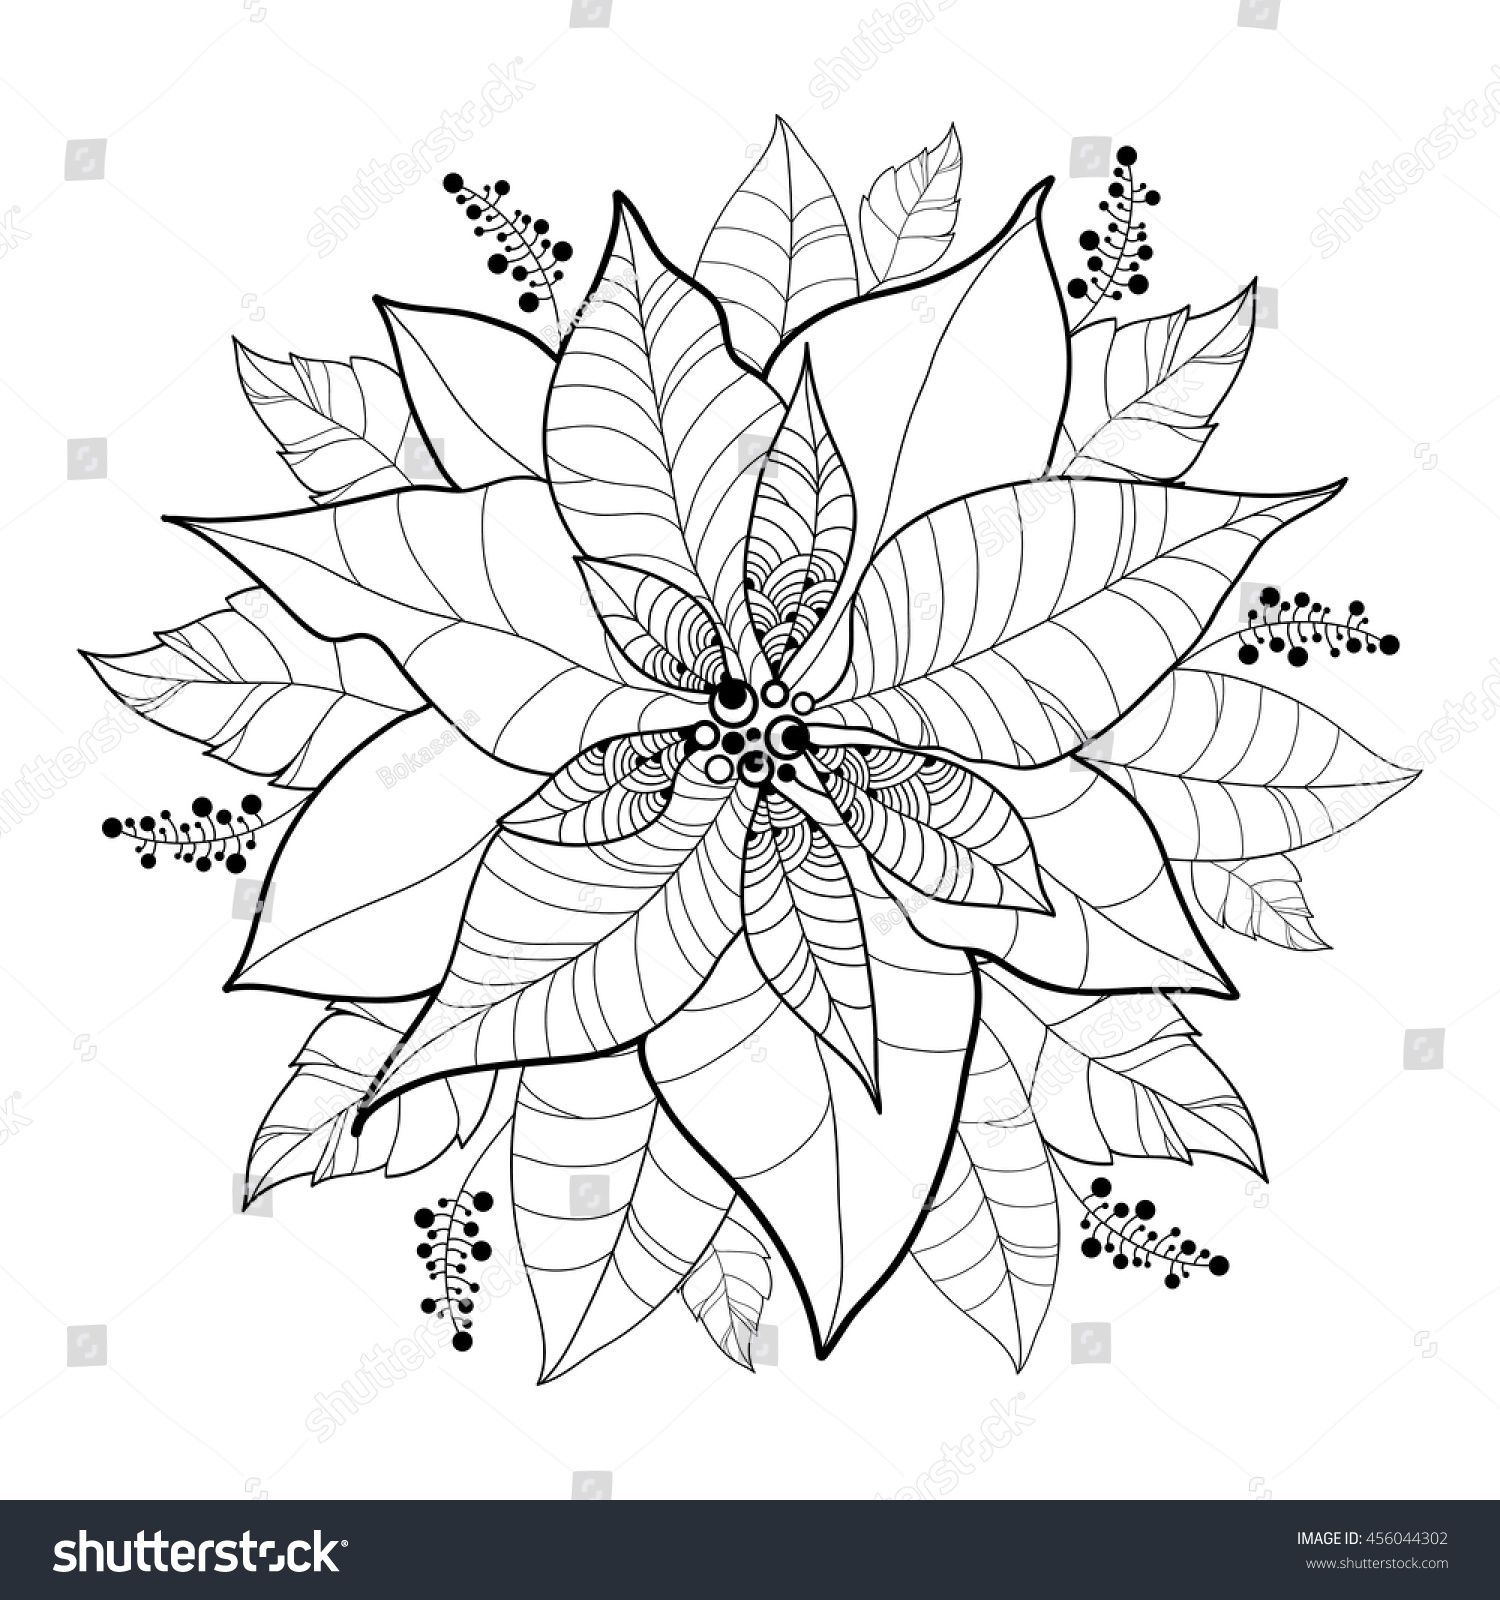 Vector Poinsettia Flower Or Christmas Star In Black Isolated On White Outline Flower And Leaves Of P Poinsettia Flower Christmas Coloring Pages Flower Doodles